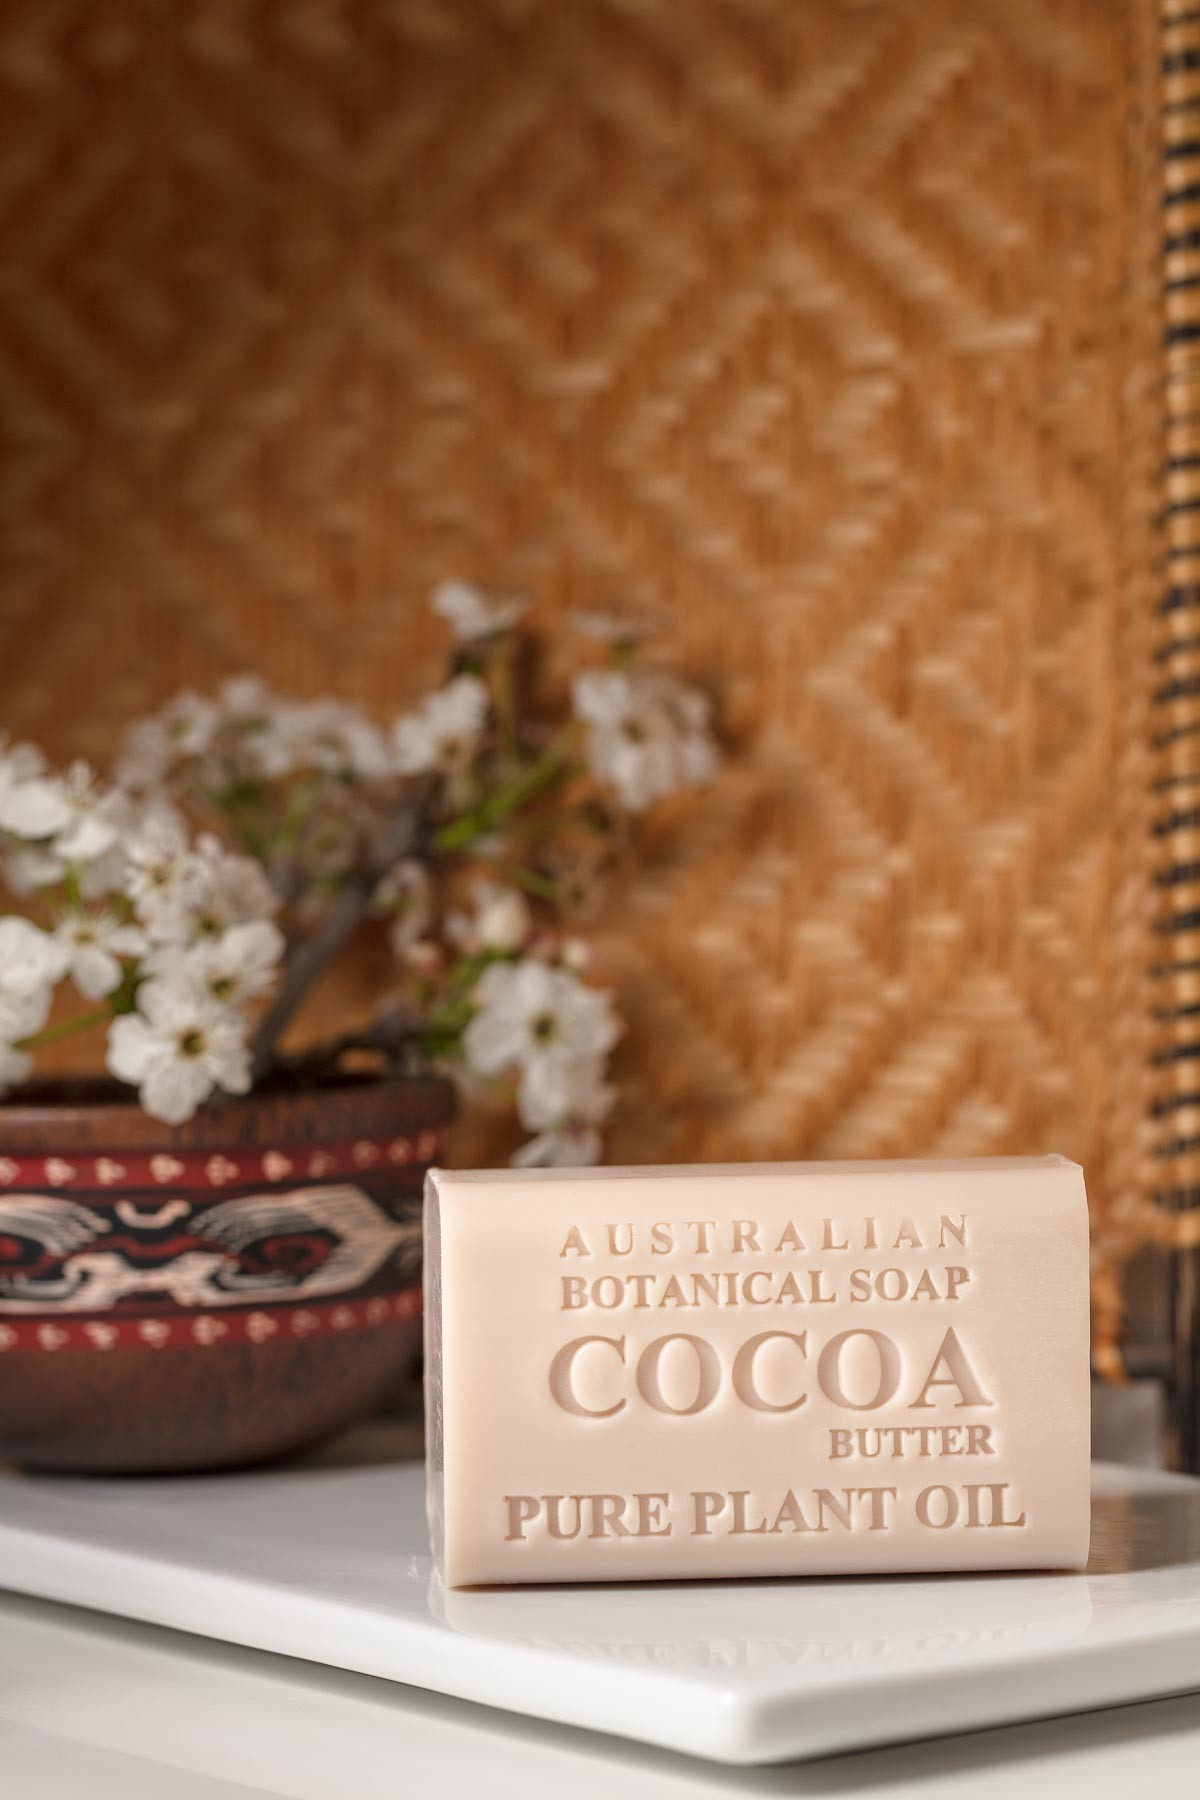 Australian Botanic Soap Cocoa dry vertical over soap dish and rustic background - Lifestyle advertising product photo